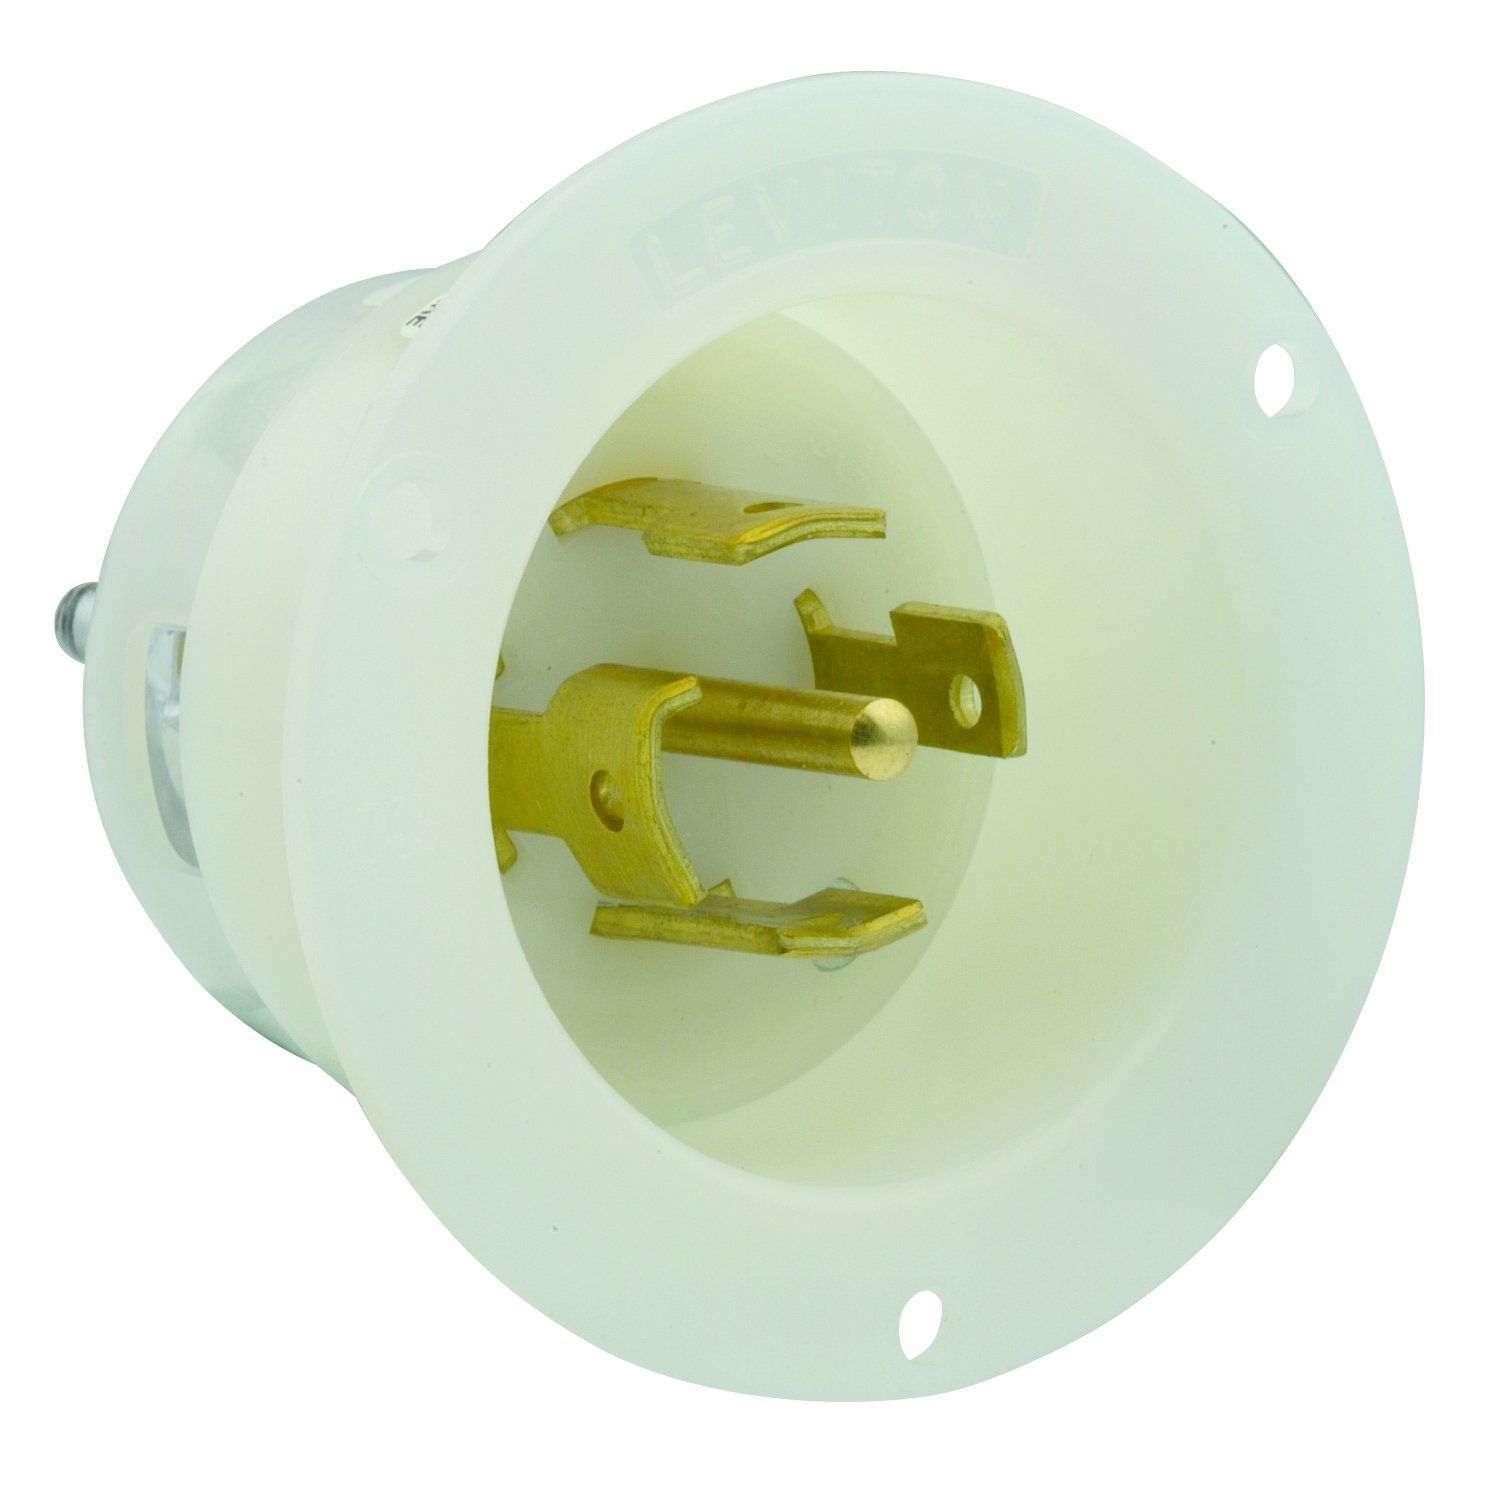 Leviton 2815 30Amp, 120/208 Volt- 3PY, Flanged Inlet Locking Receptacle, Industrial Grade, Grounding, White